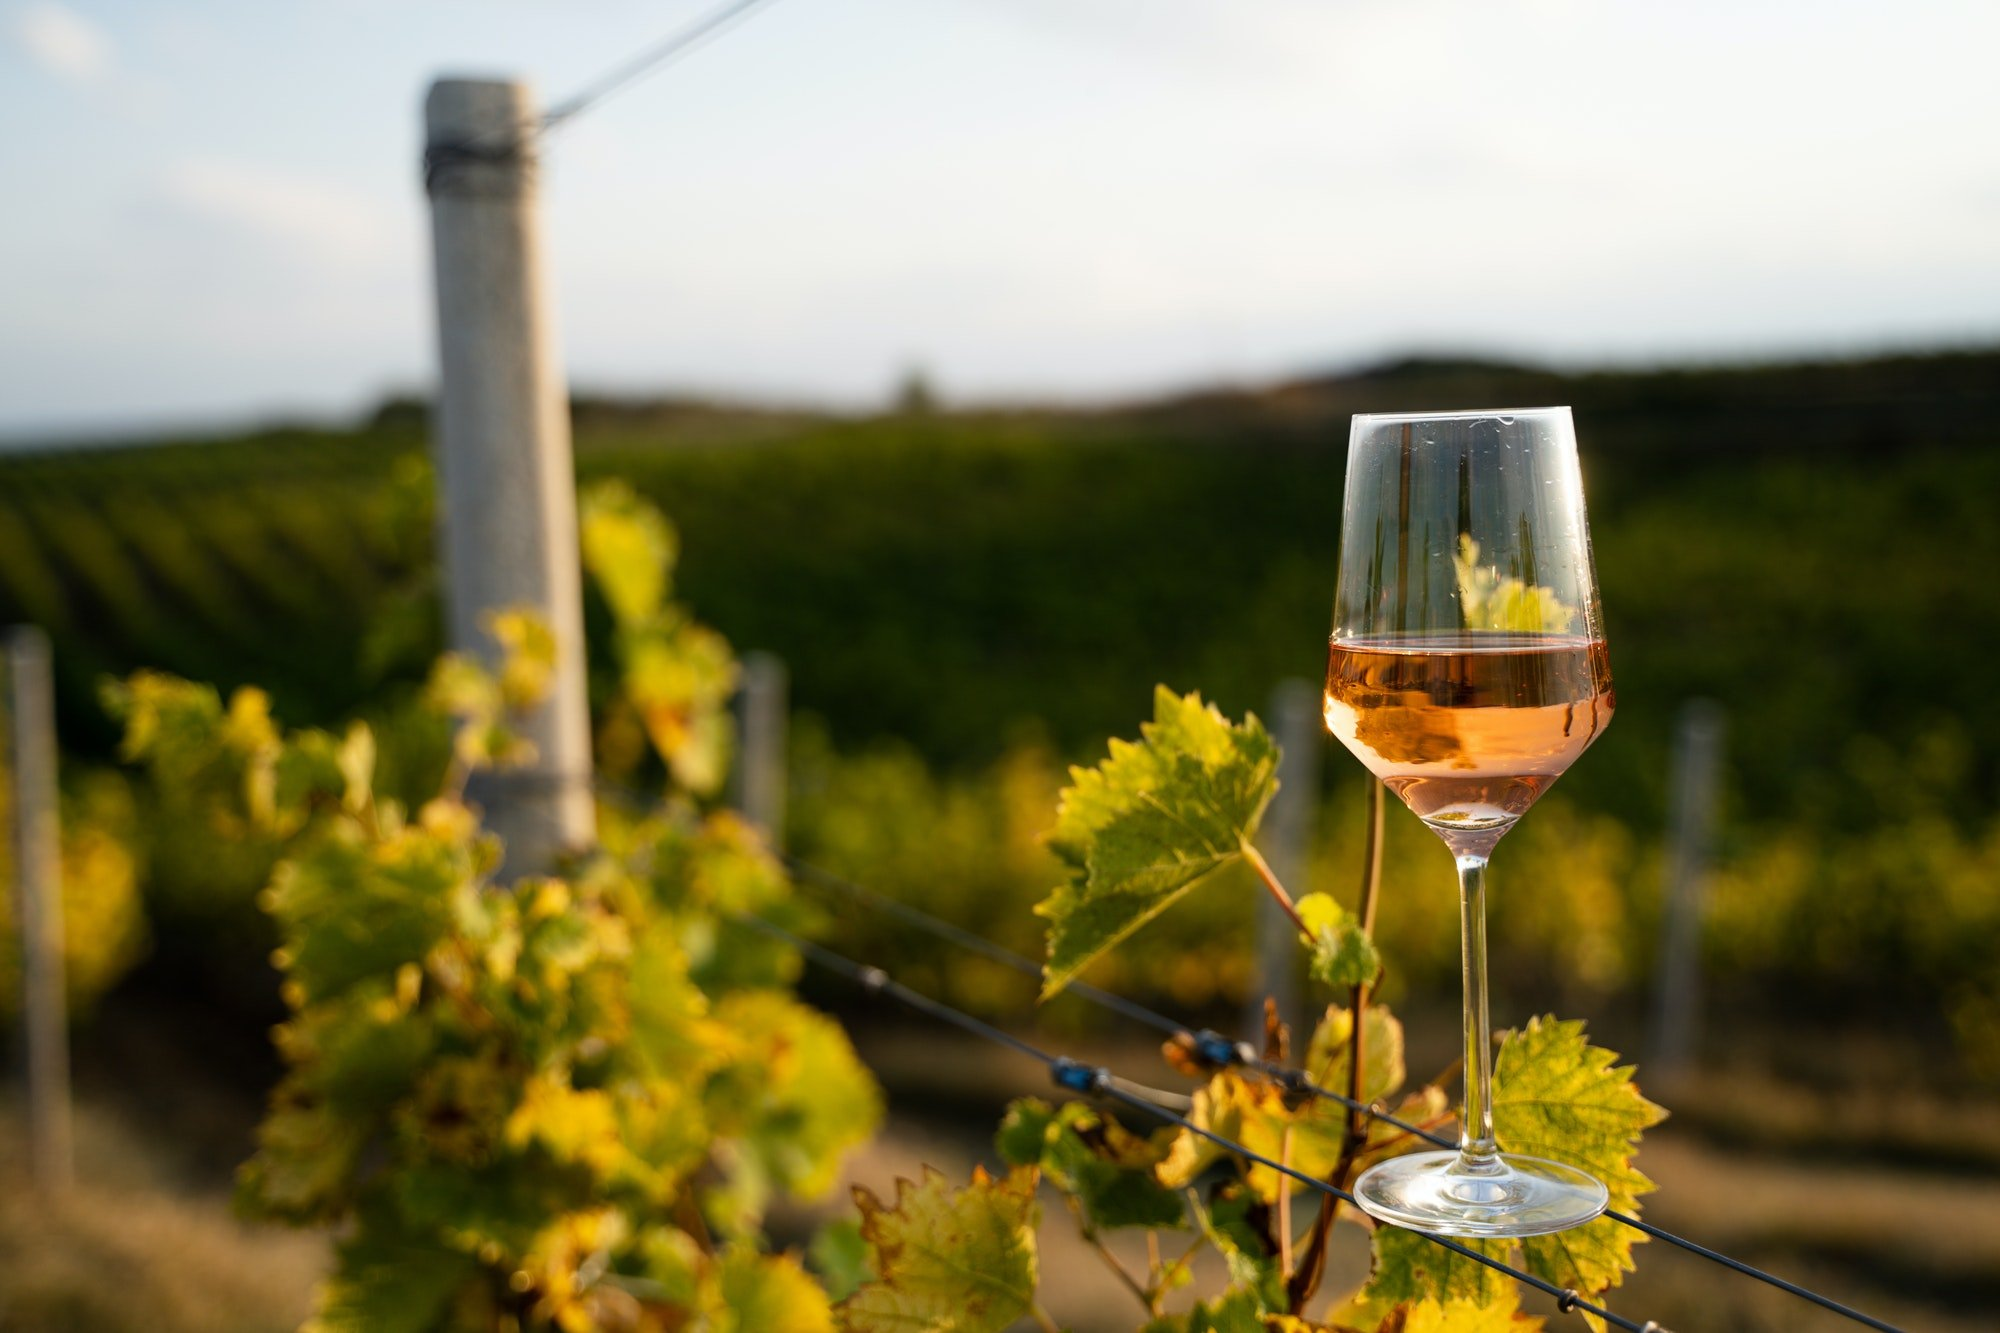 glass of rose wine in the vineyard with blue sky